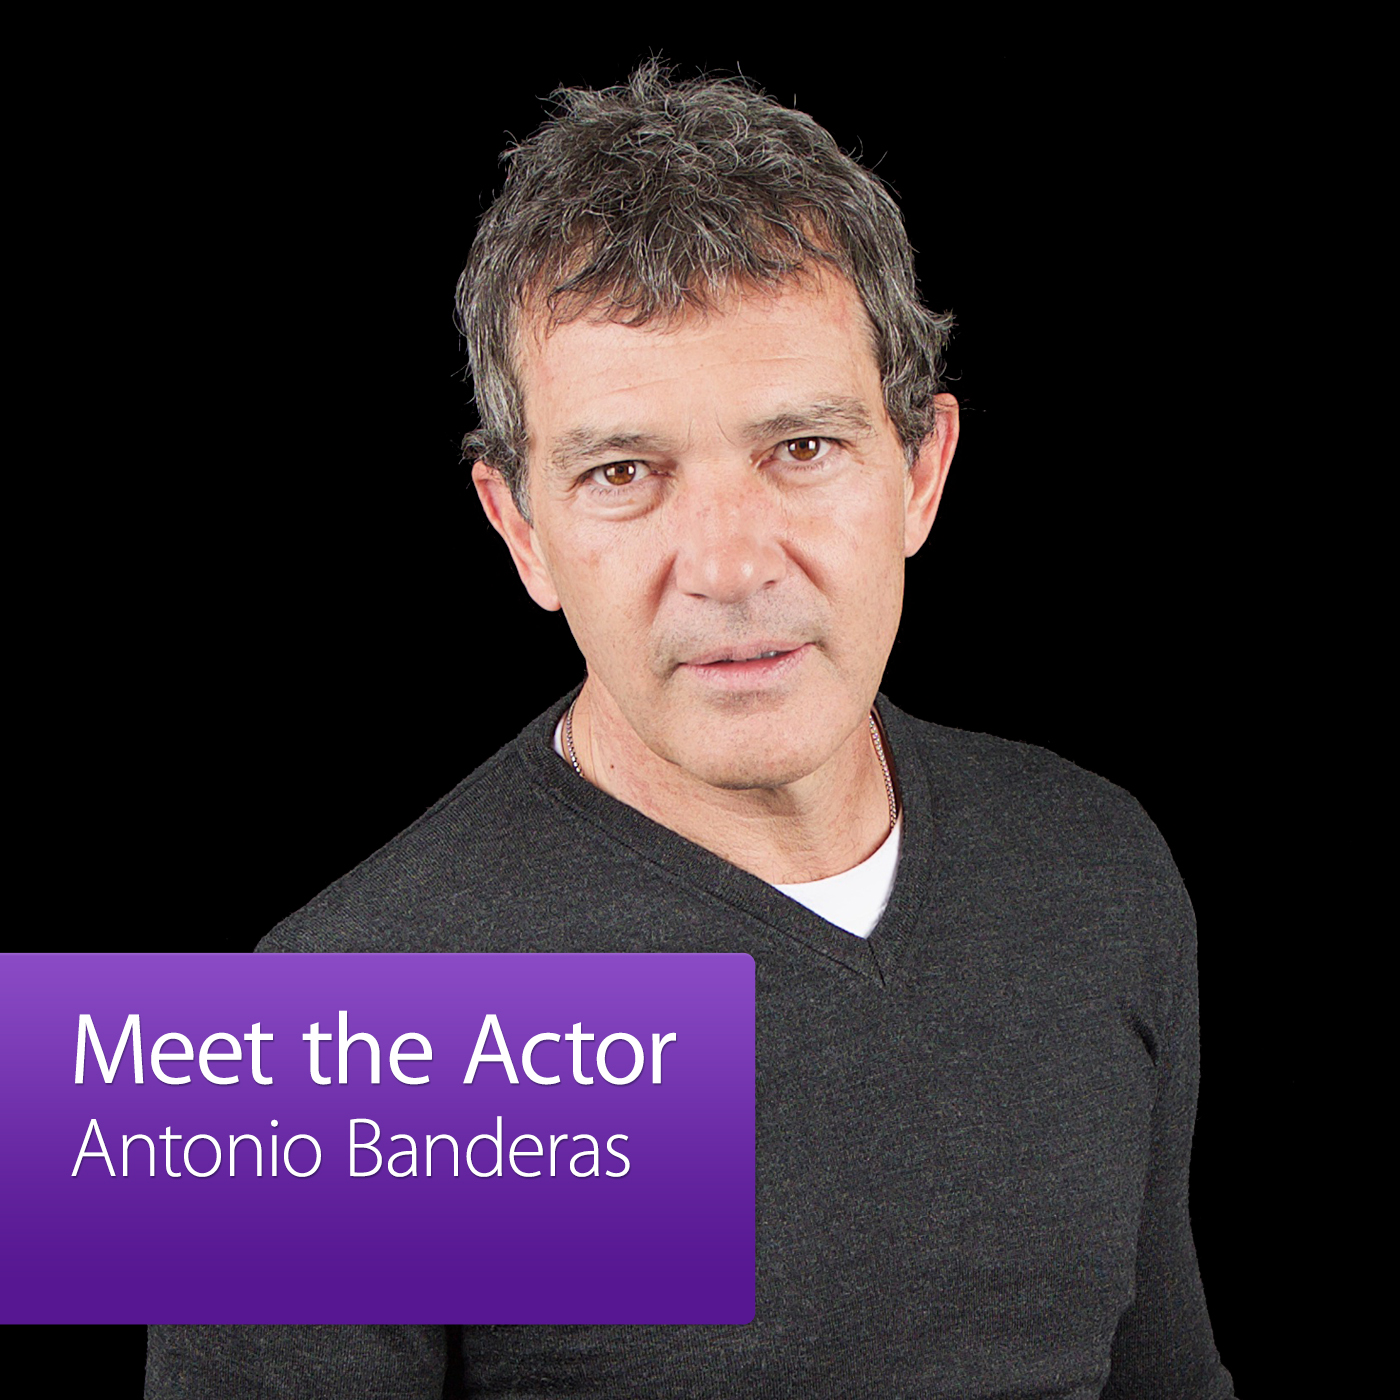 Antonio Banderas: Meet the Actor